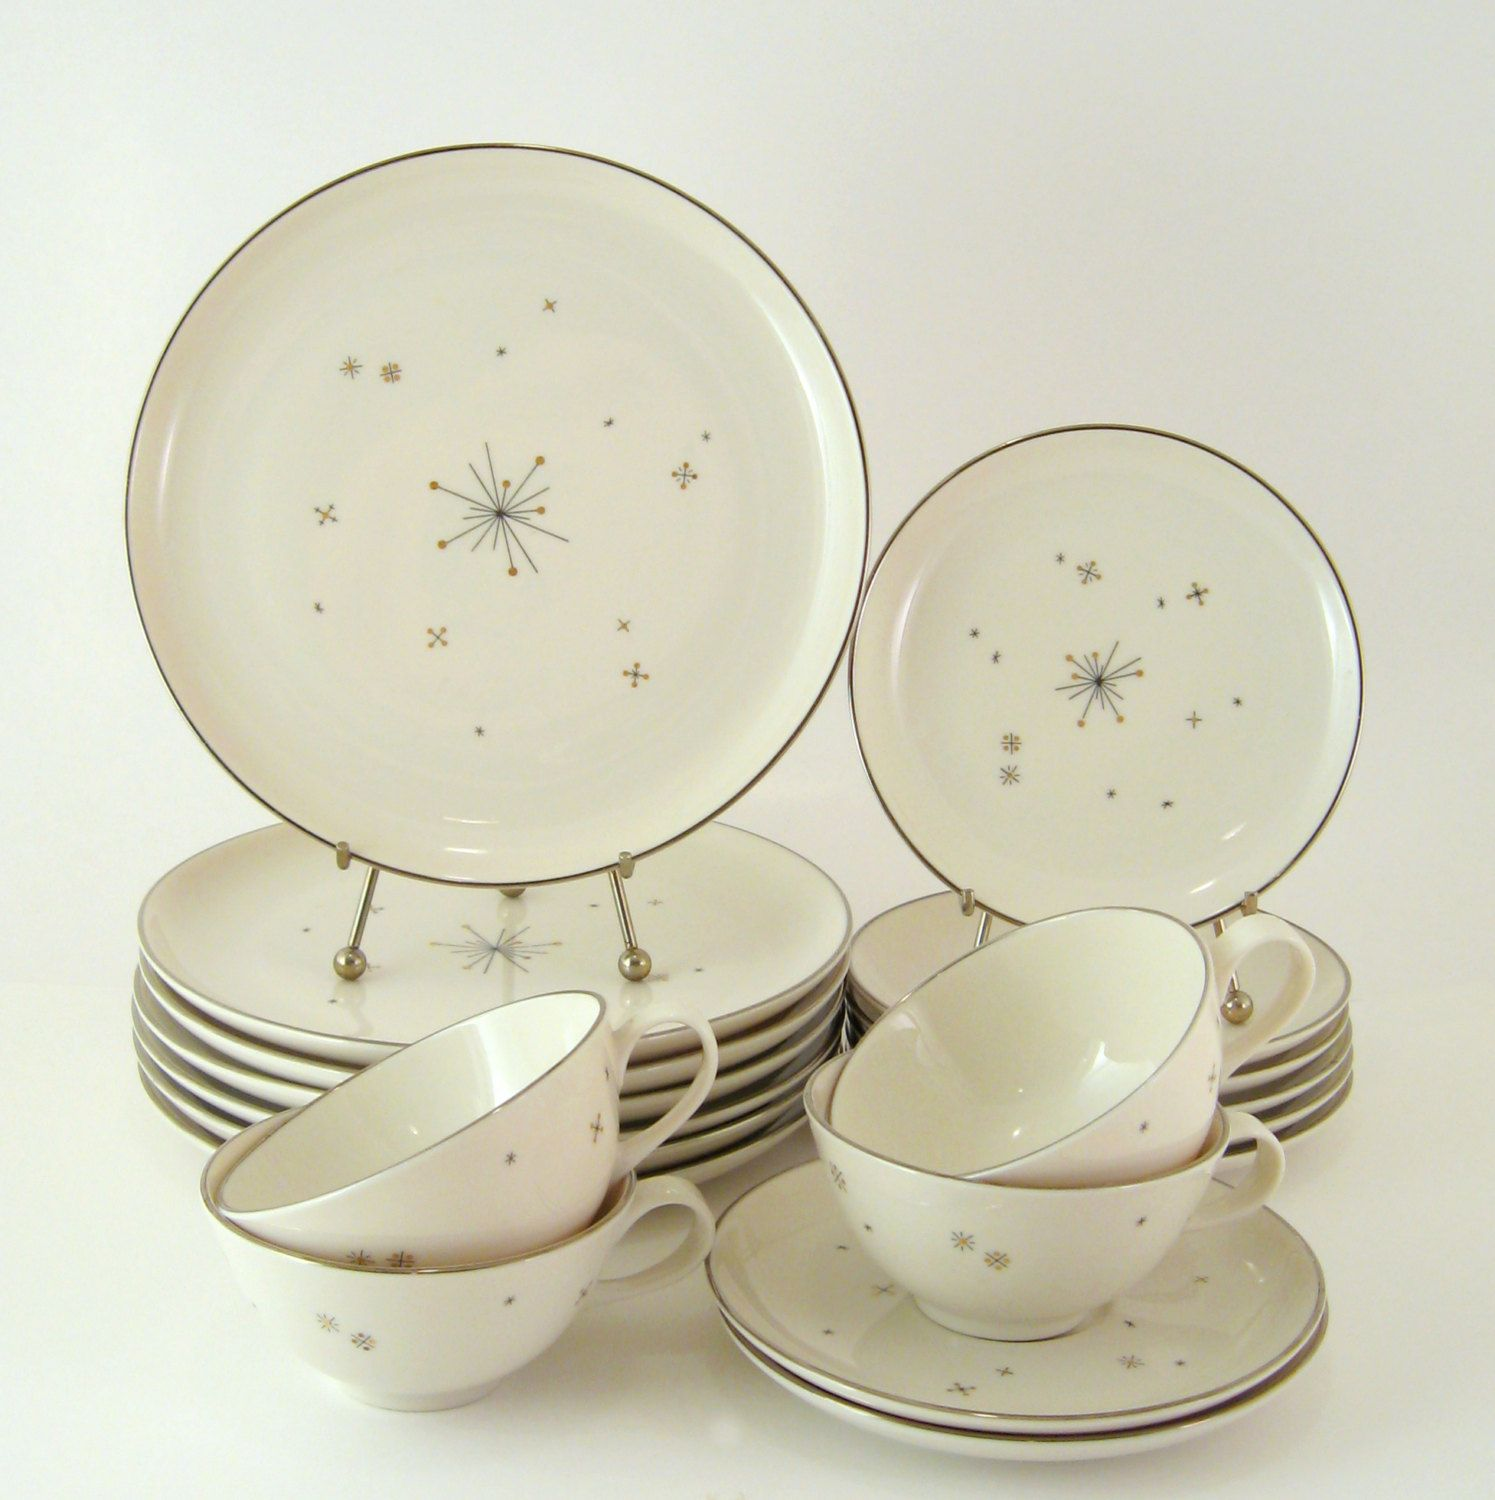 Vintage Dinnerware Set Syracuse China Evening Star Mid-Century Modern Atomic Dishes & Vintage Dinnerware Set Syracuse China Evening Star Mid-Century ...